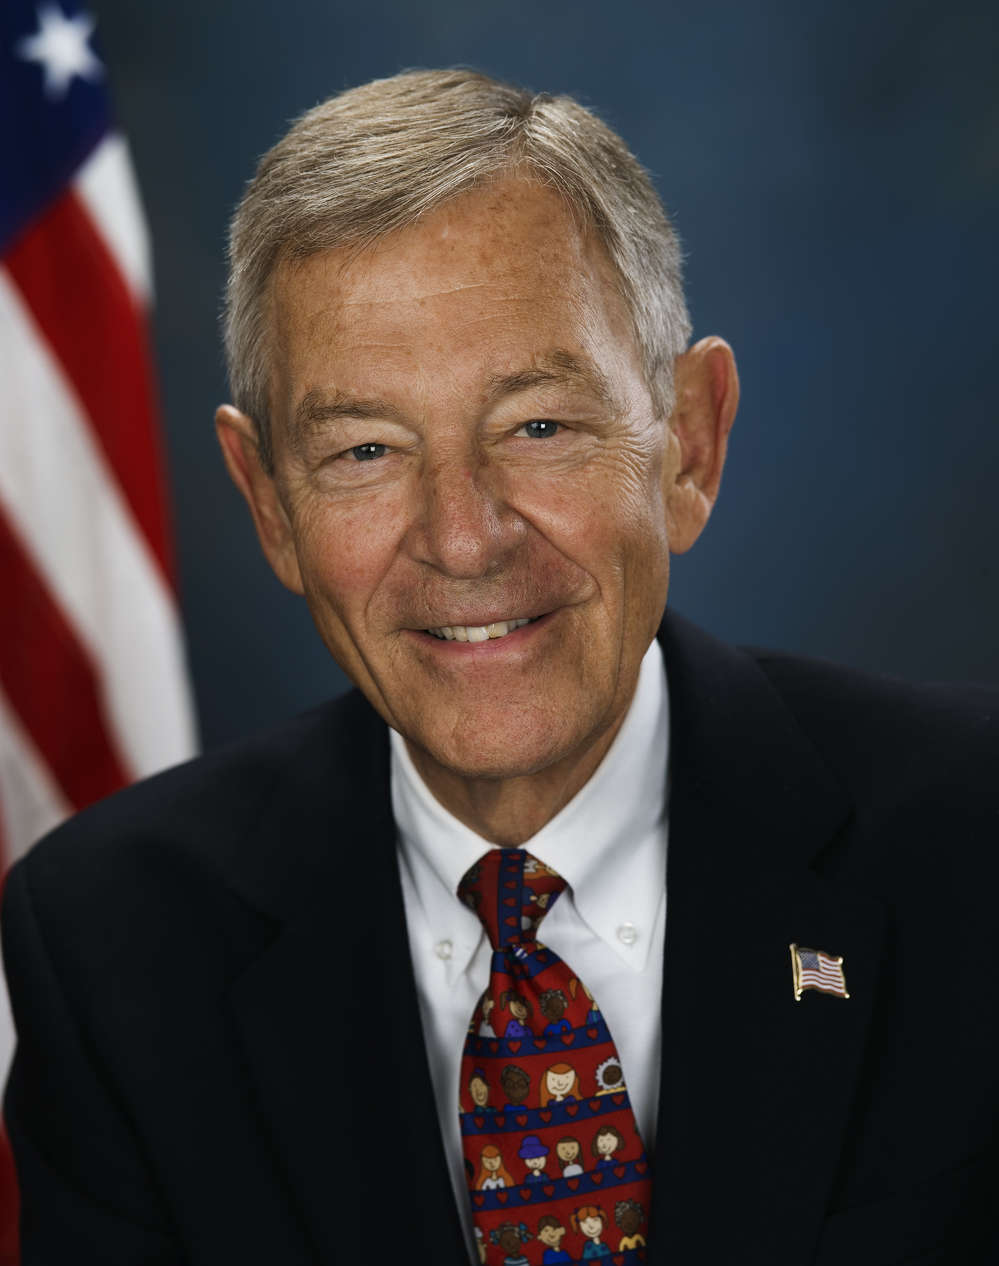 George Voinovich consistently championed strong investment in transportation infrastructure as a mayor, governor and U.S. Senator during a distinguished career.